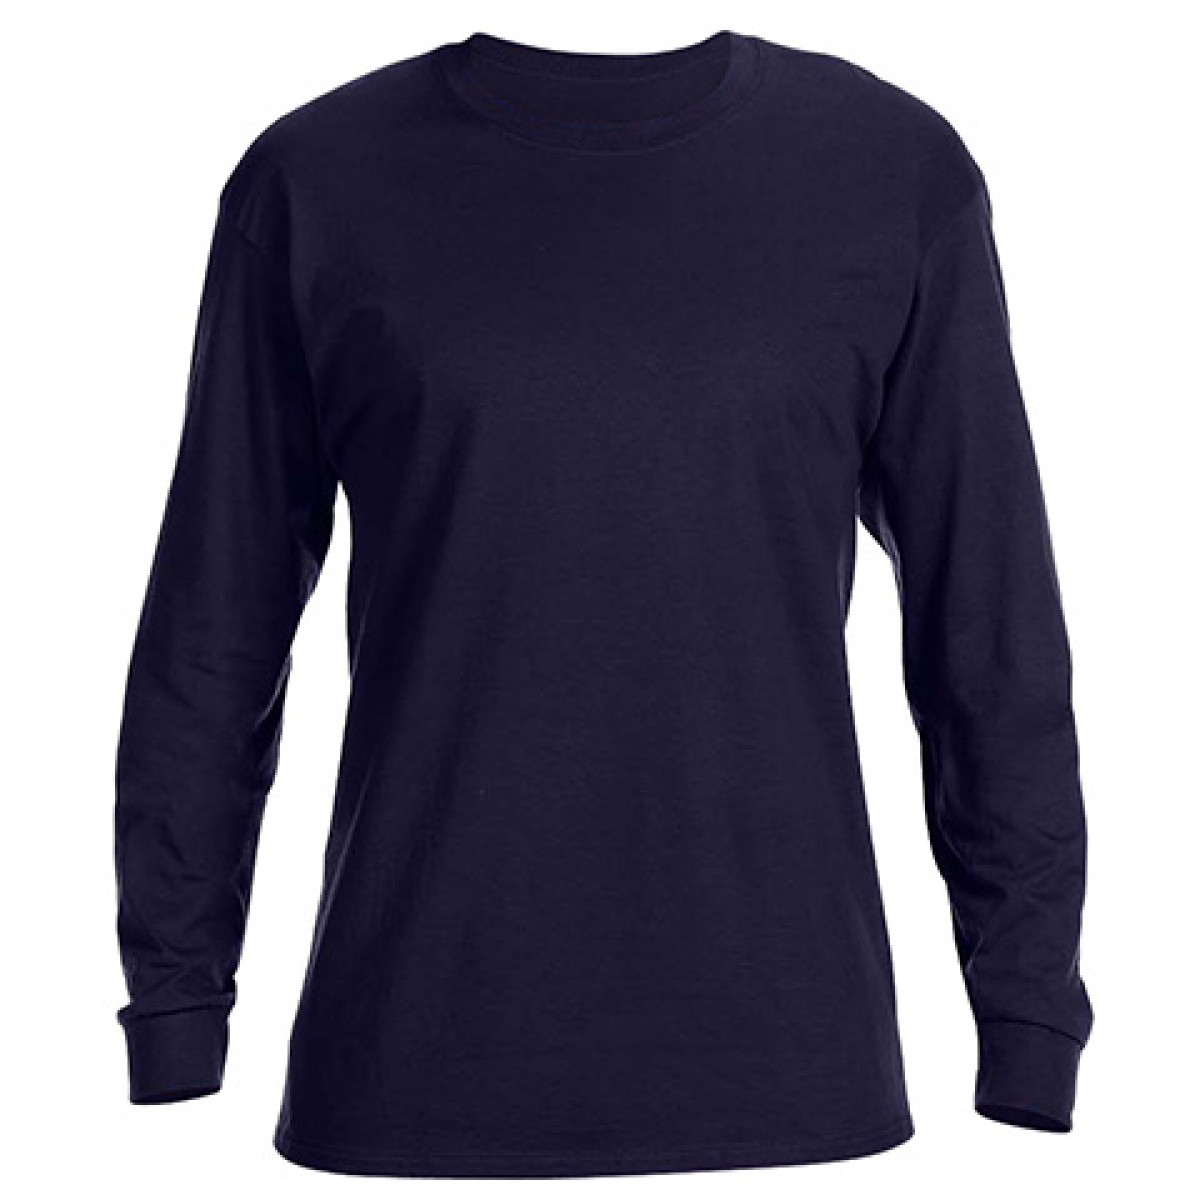 Basic Long Sleeve Crew Neck -Navy-3XL